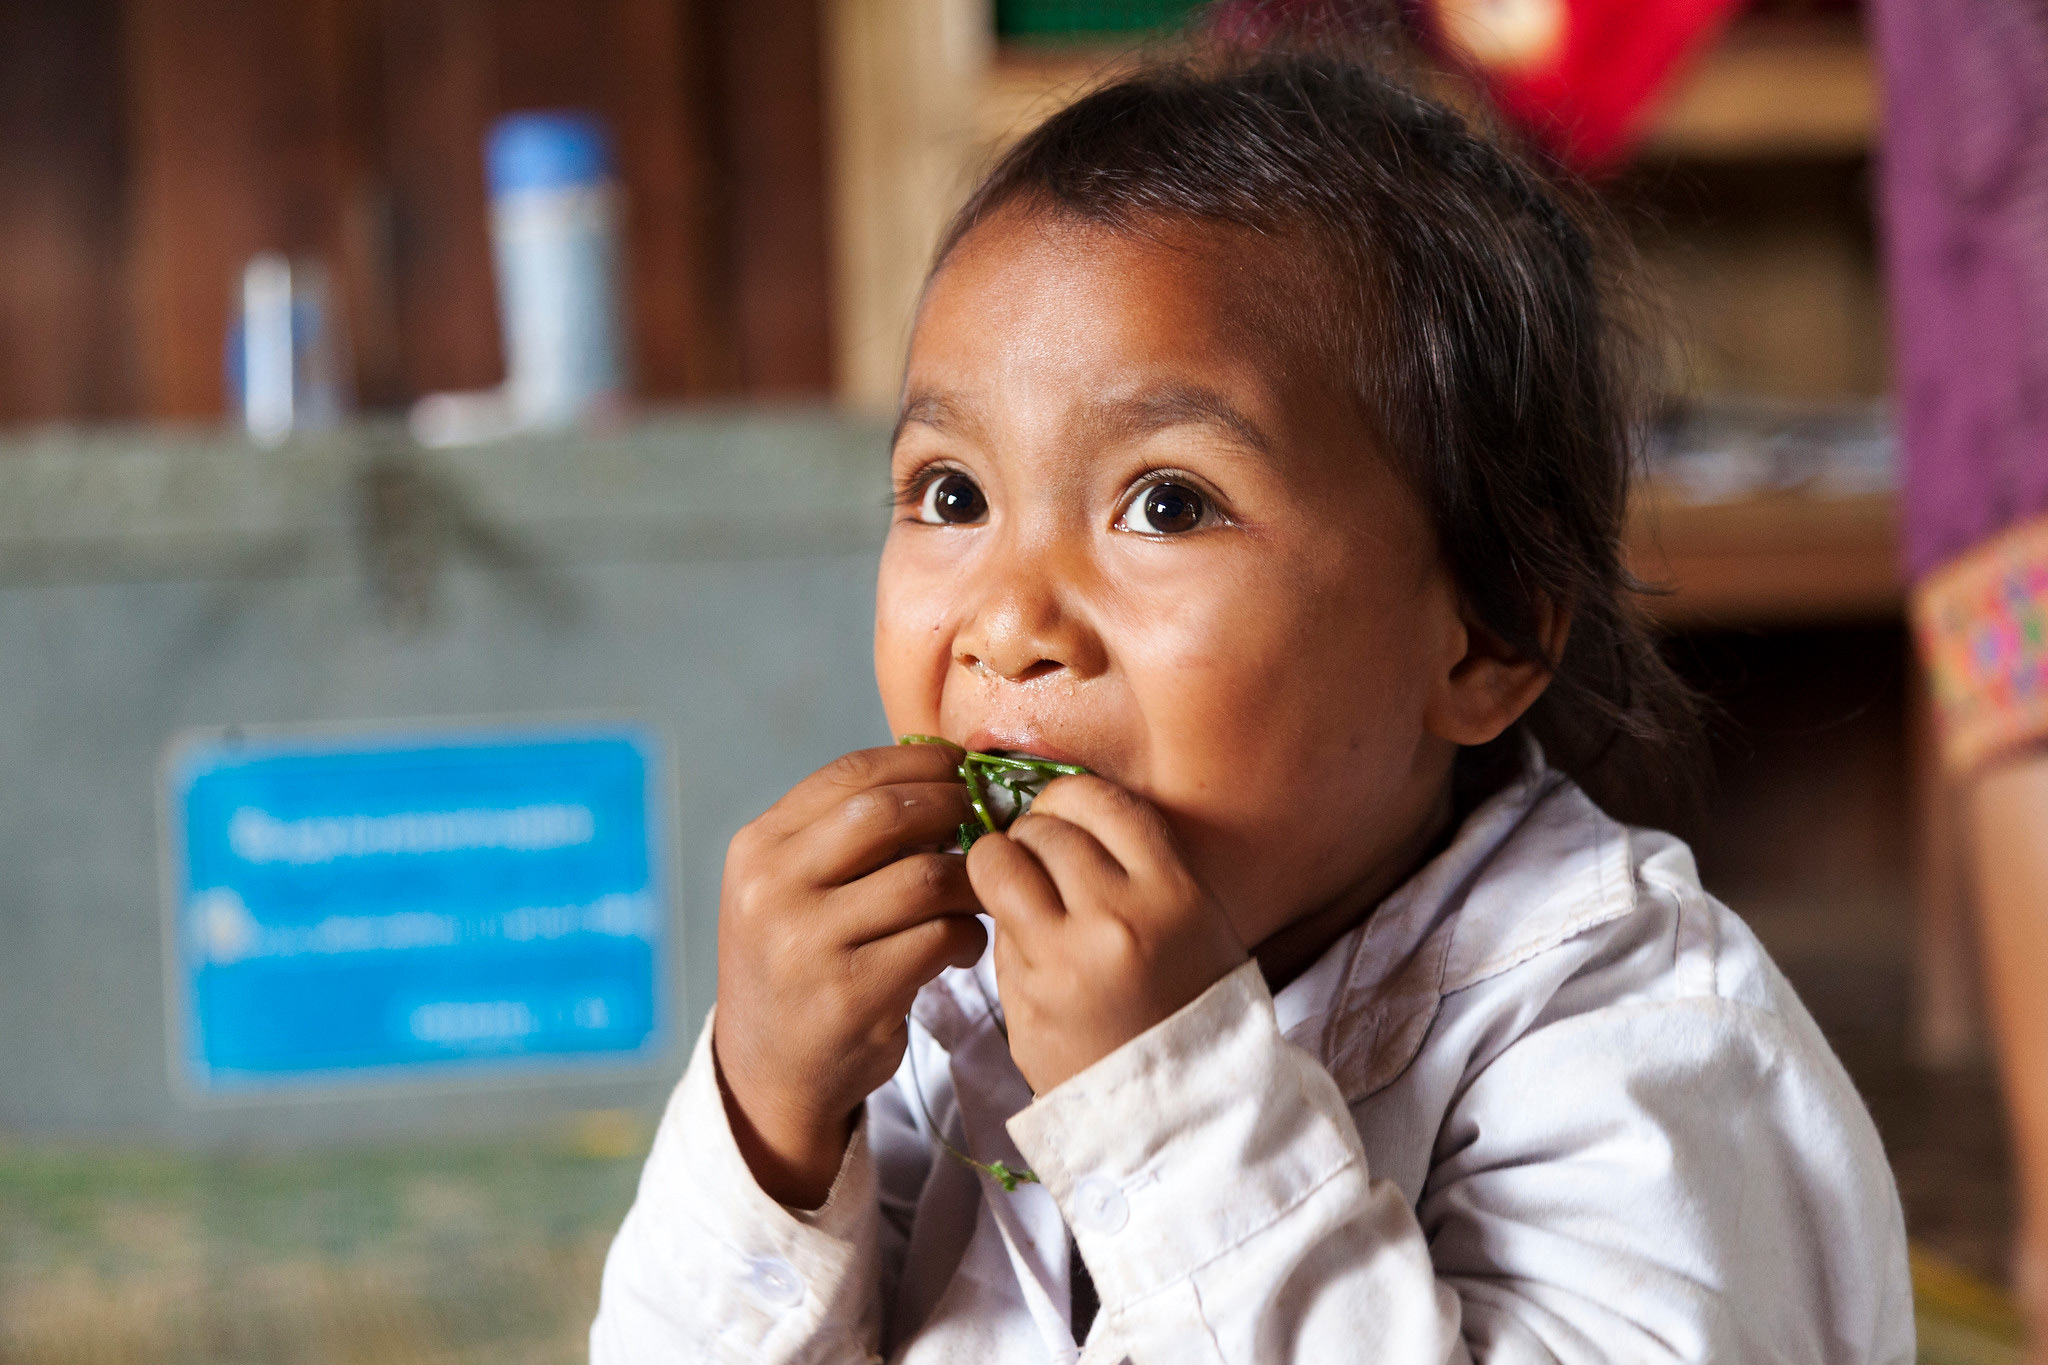 A child eating.